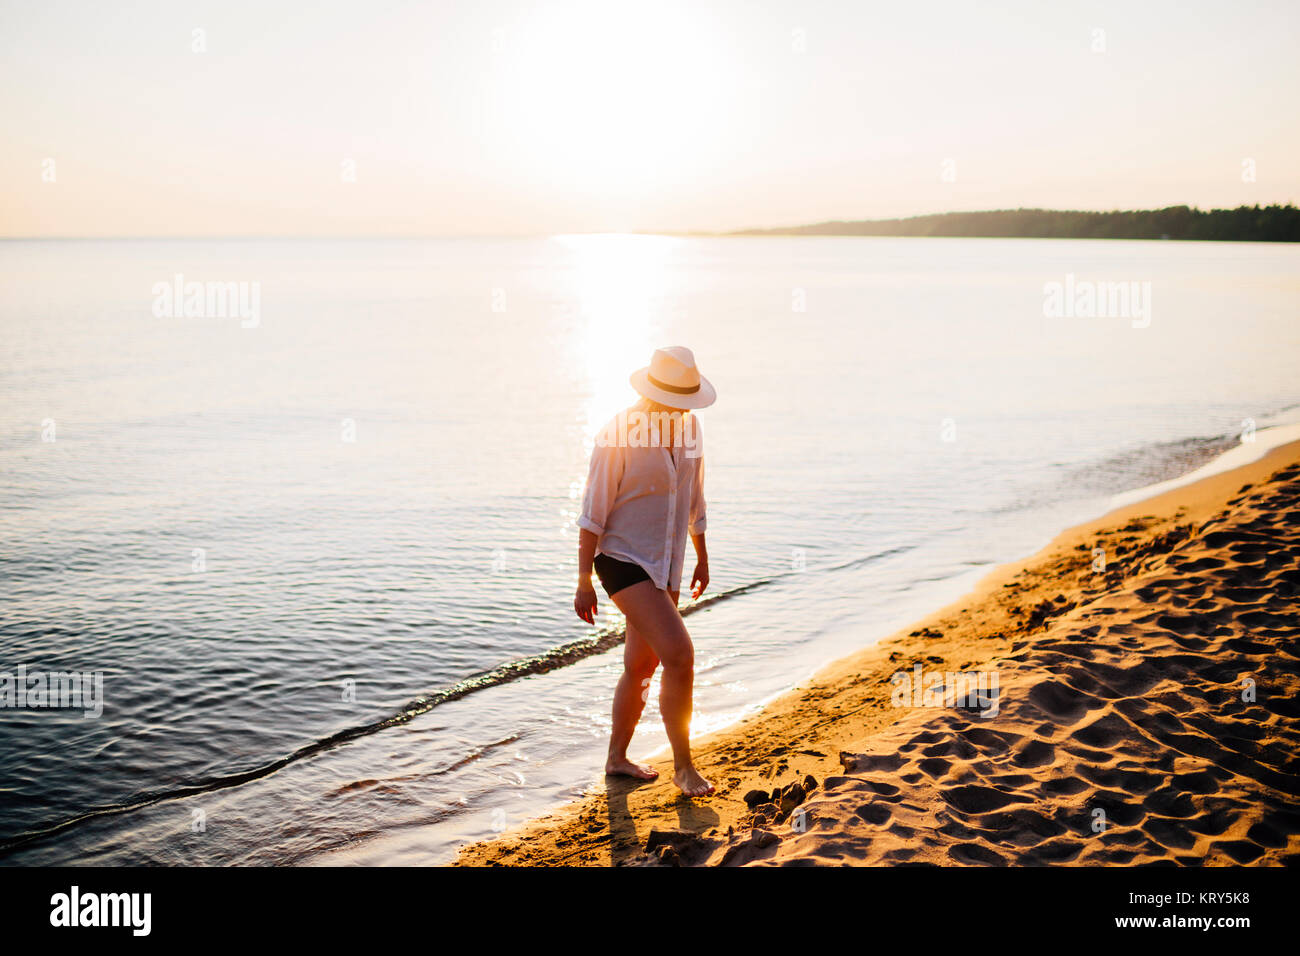 A woman on the beach - Stock Image